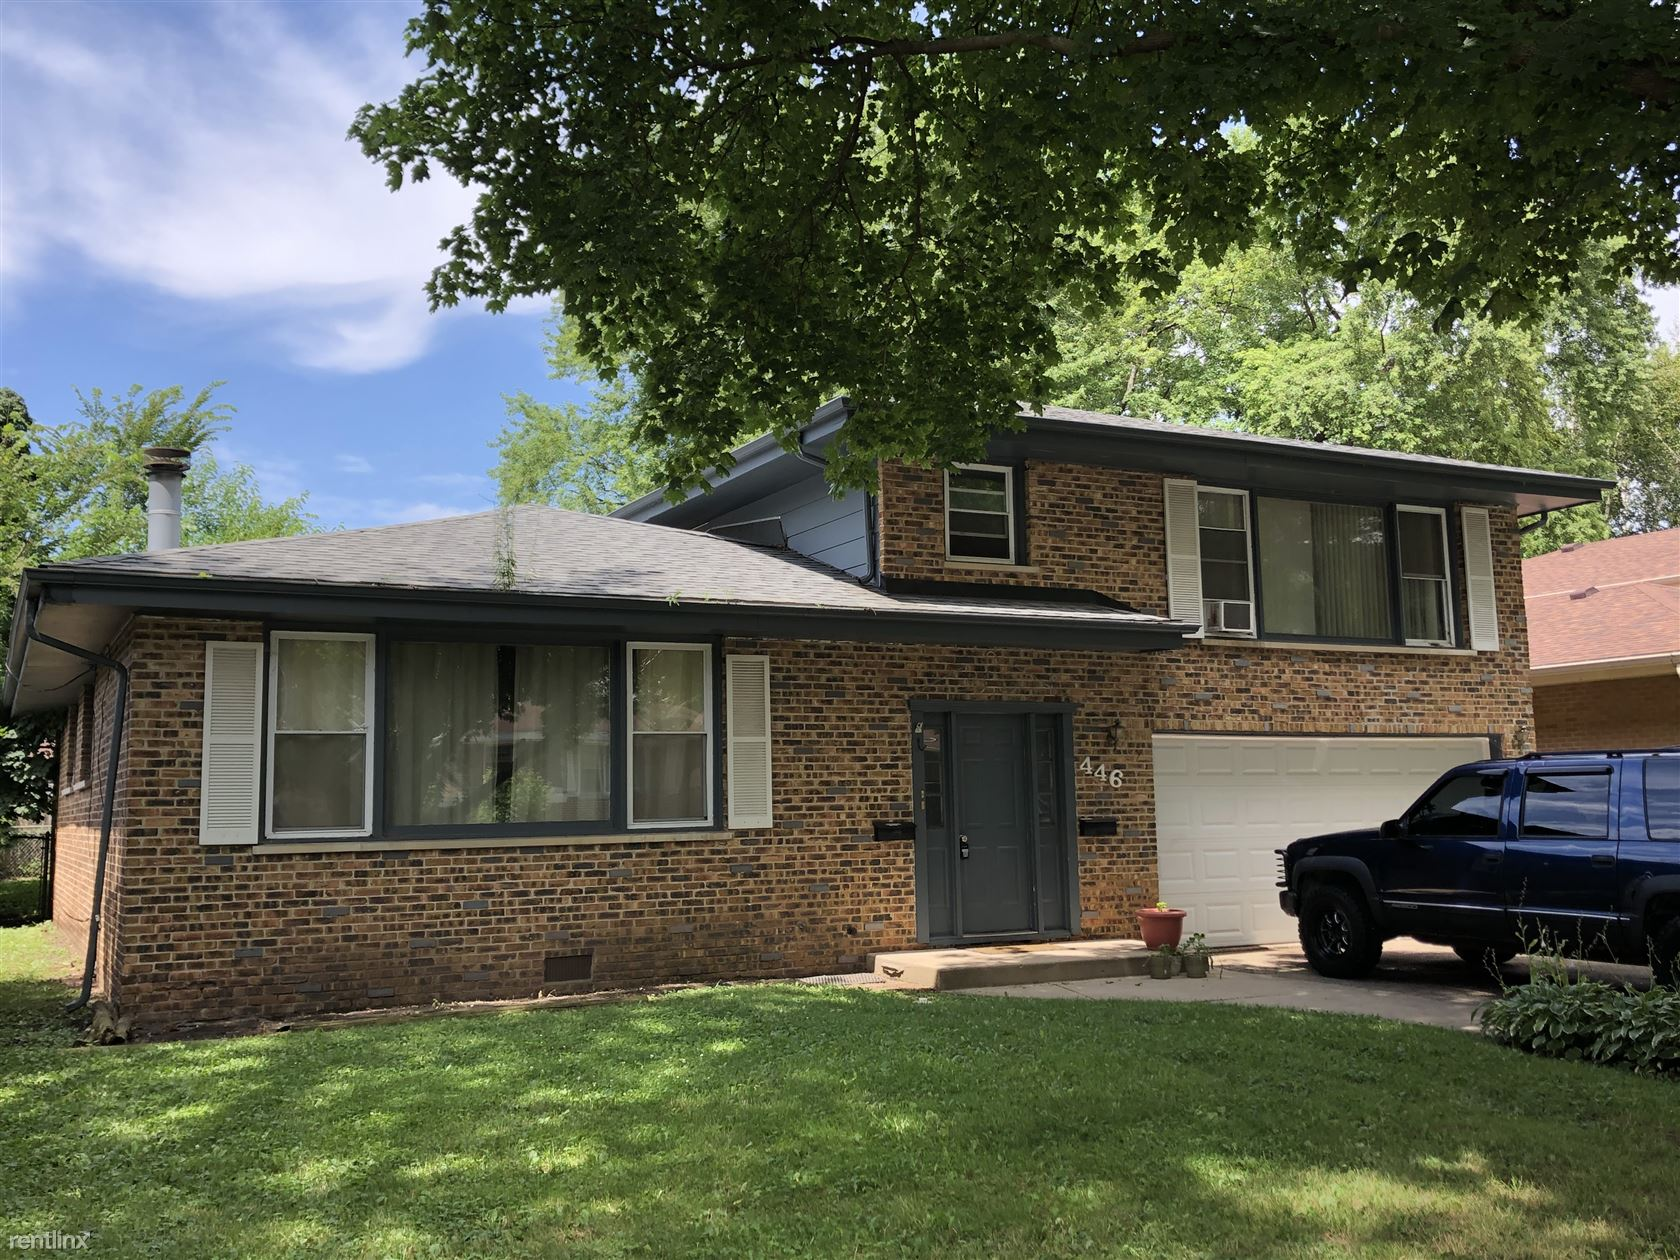 446 Edwards Ave Unit A, West Dundee, IL - $1,375